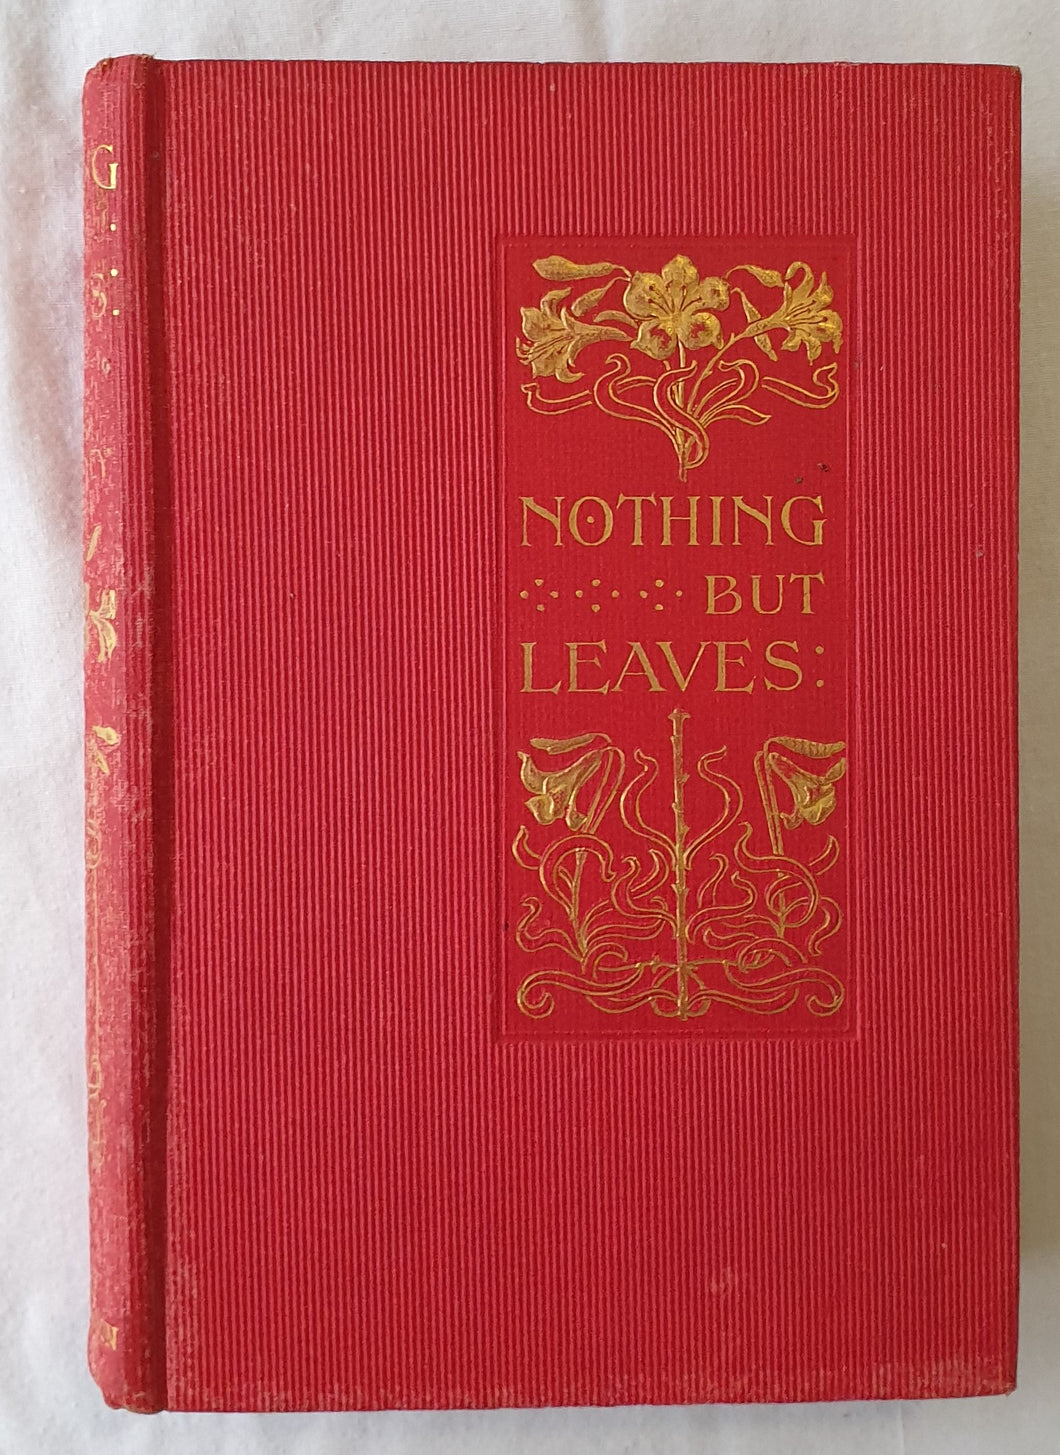 Nothing But Leaves by Sarah Doudney